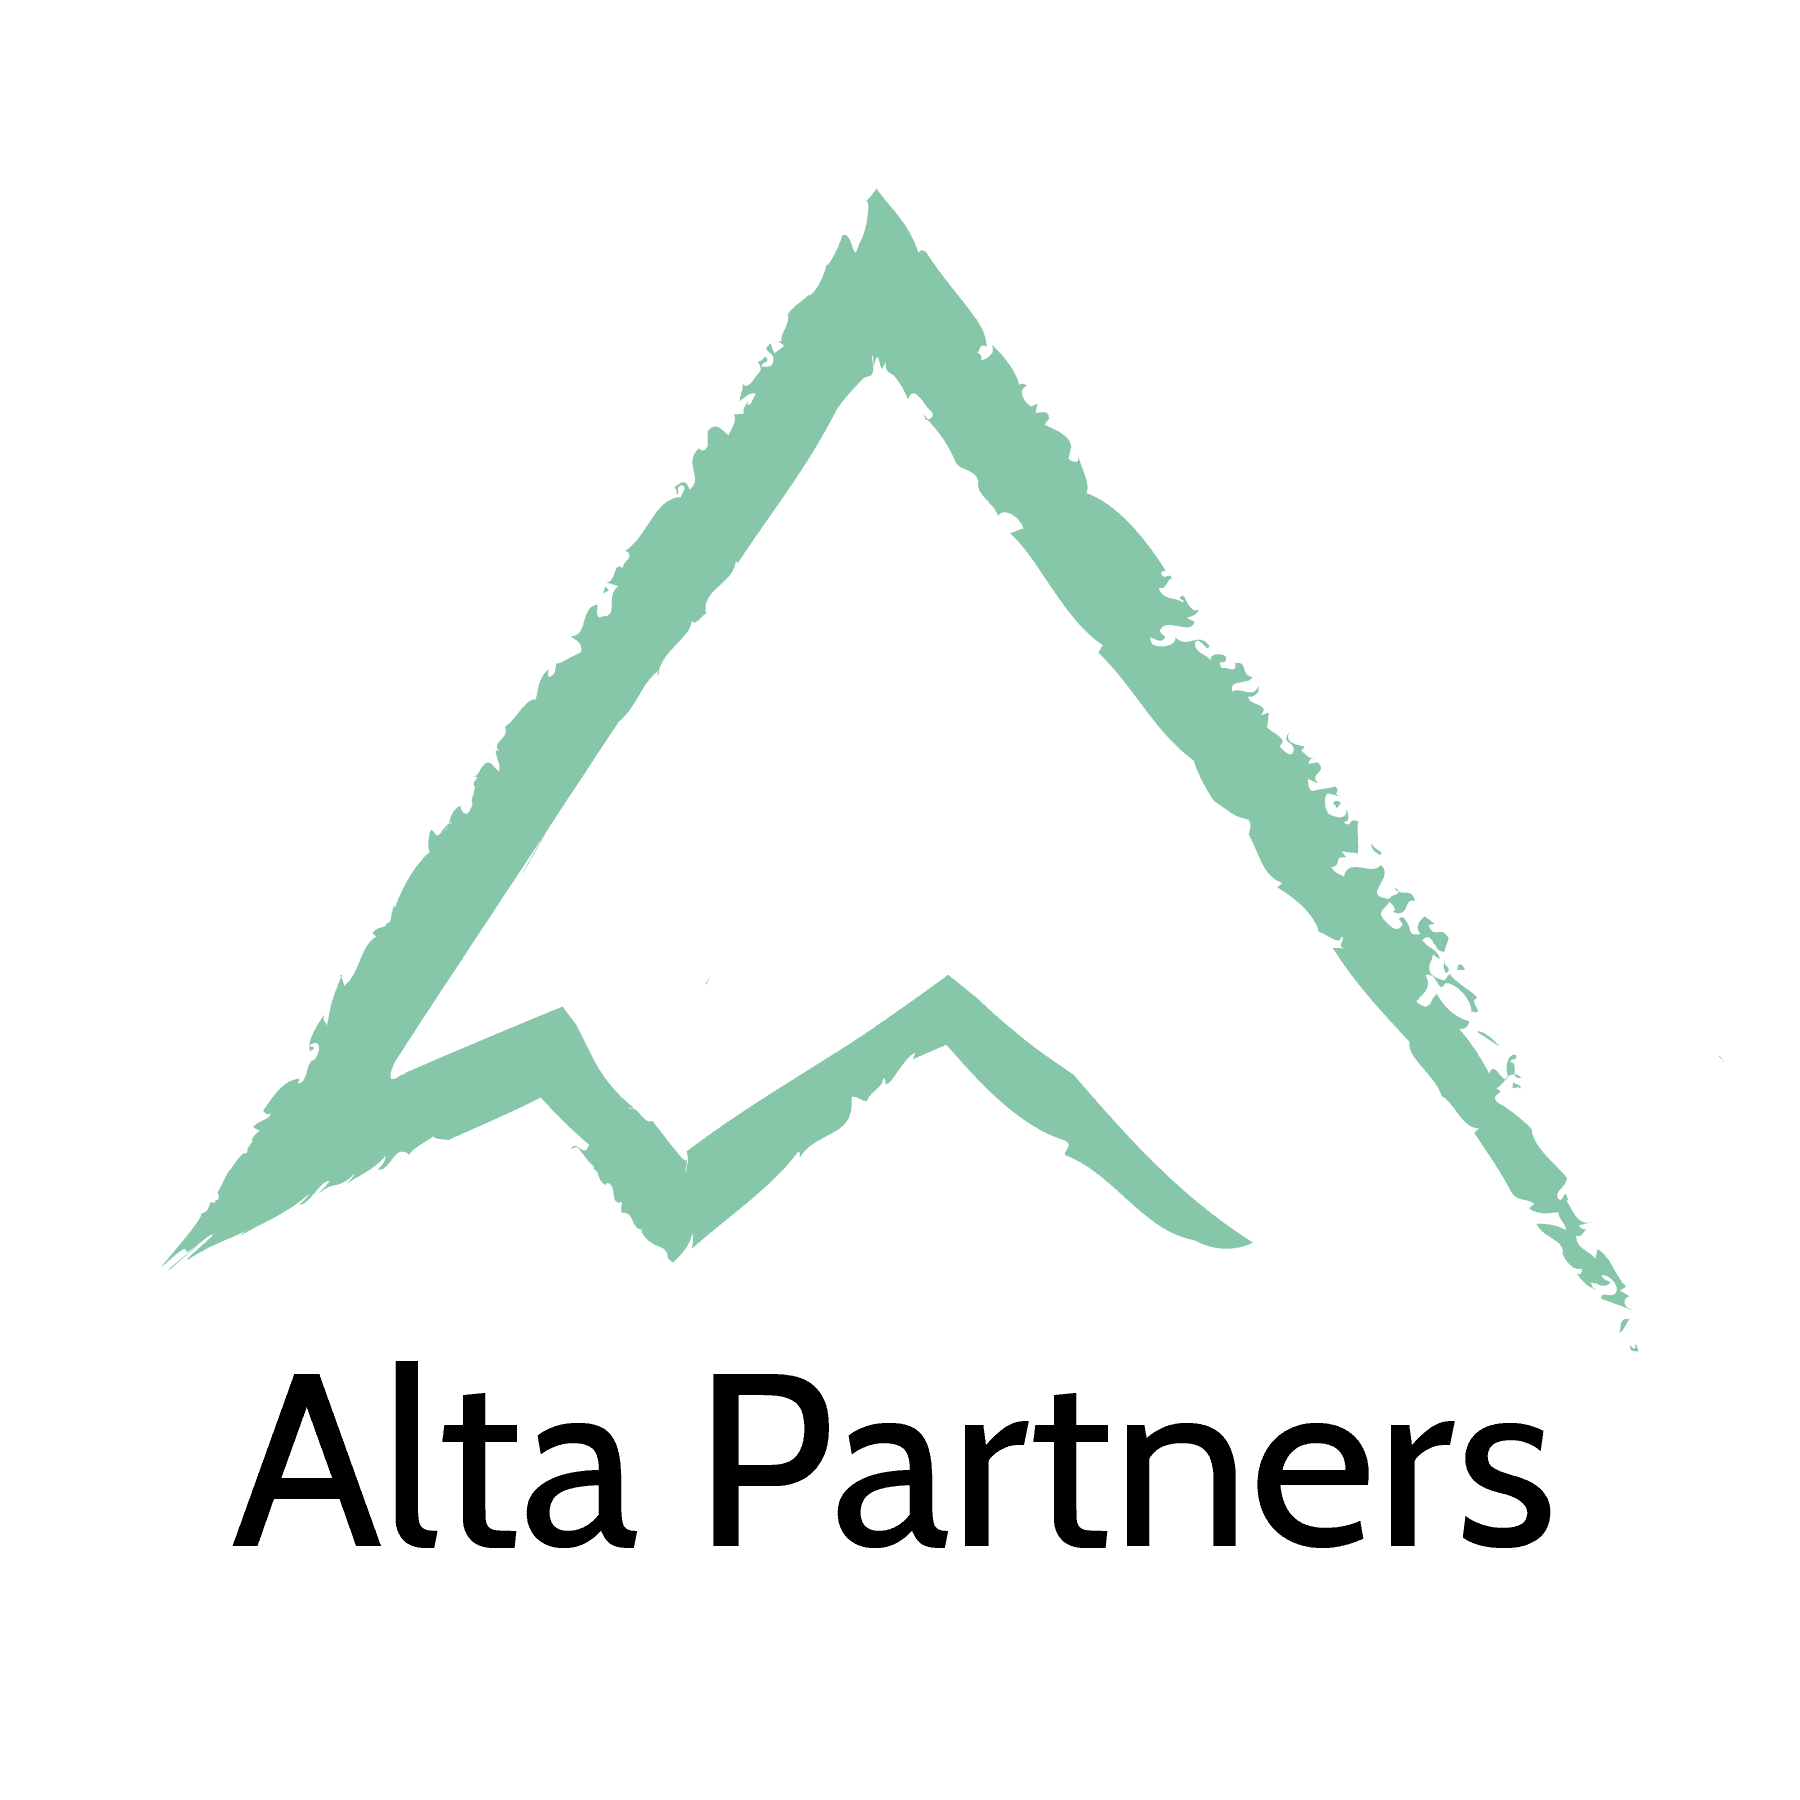 alta partners leading healthcare venture capital firm